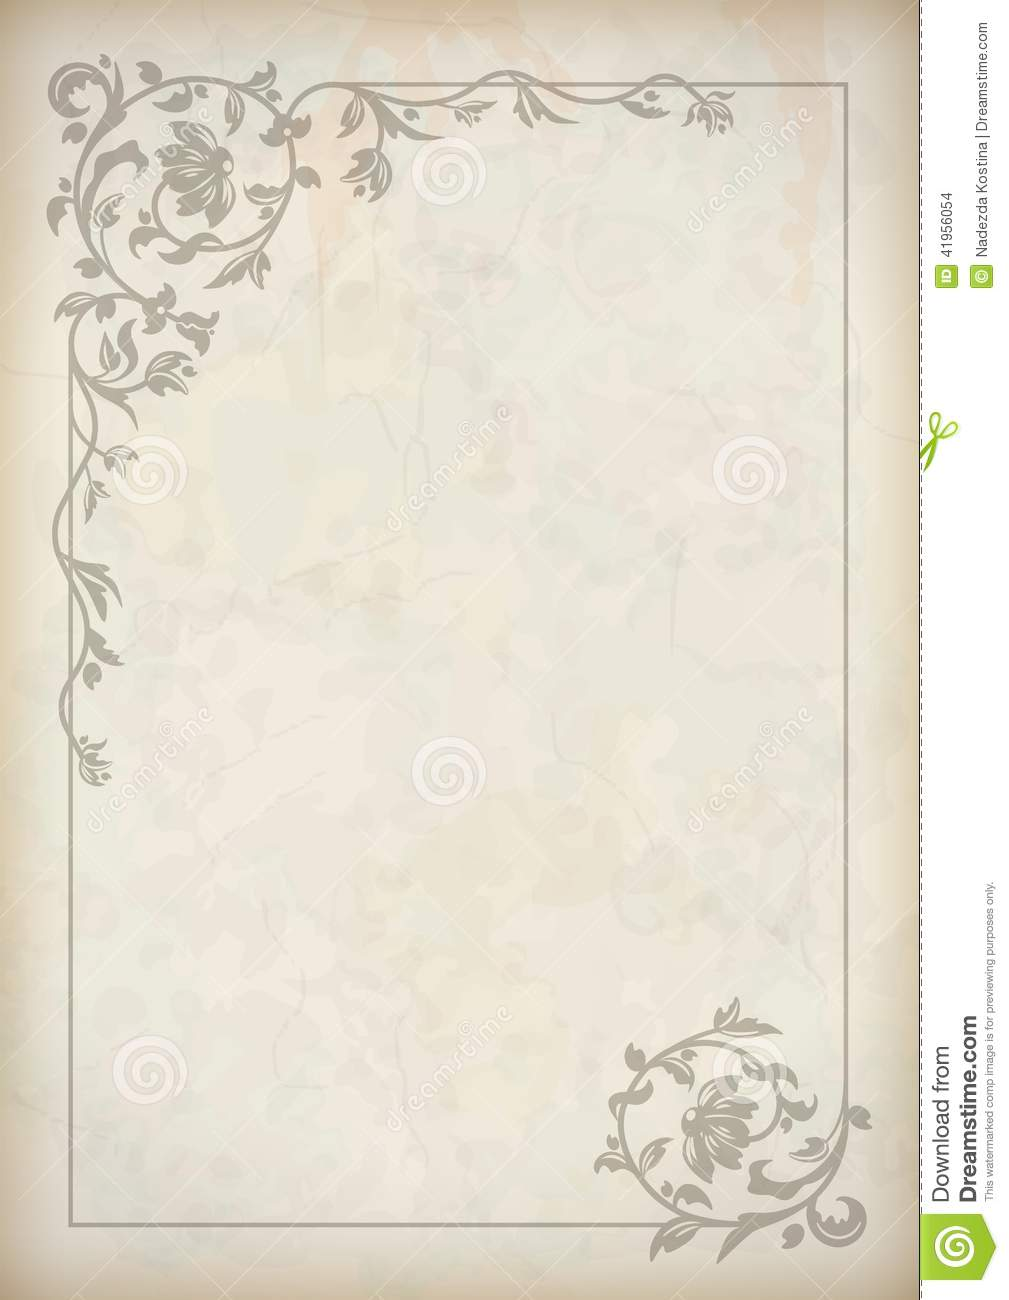 Vector vintage border frame at grunge textured old paper background ...